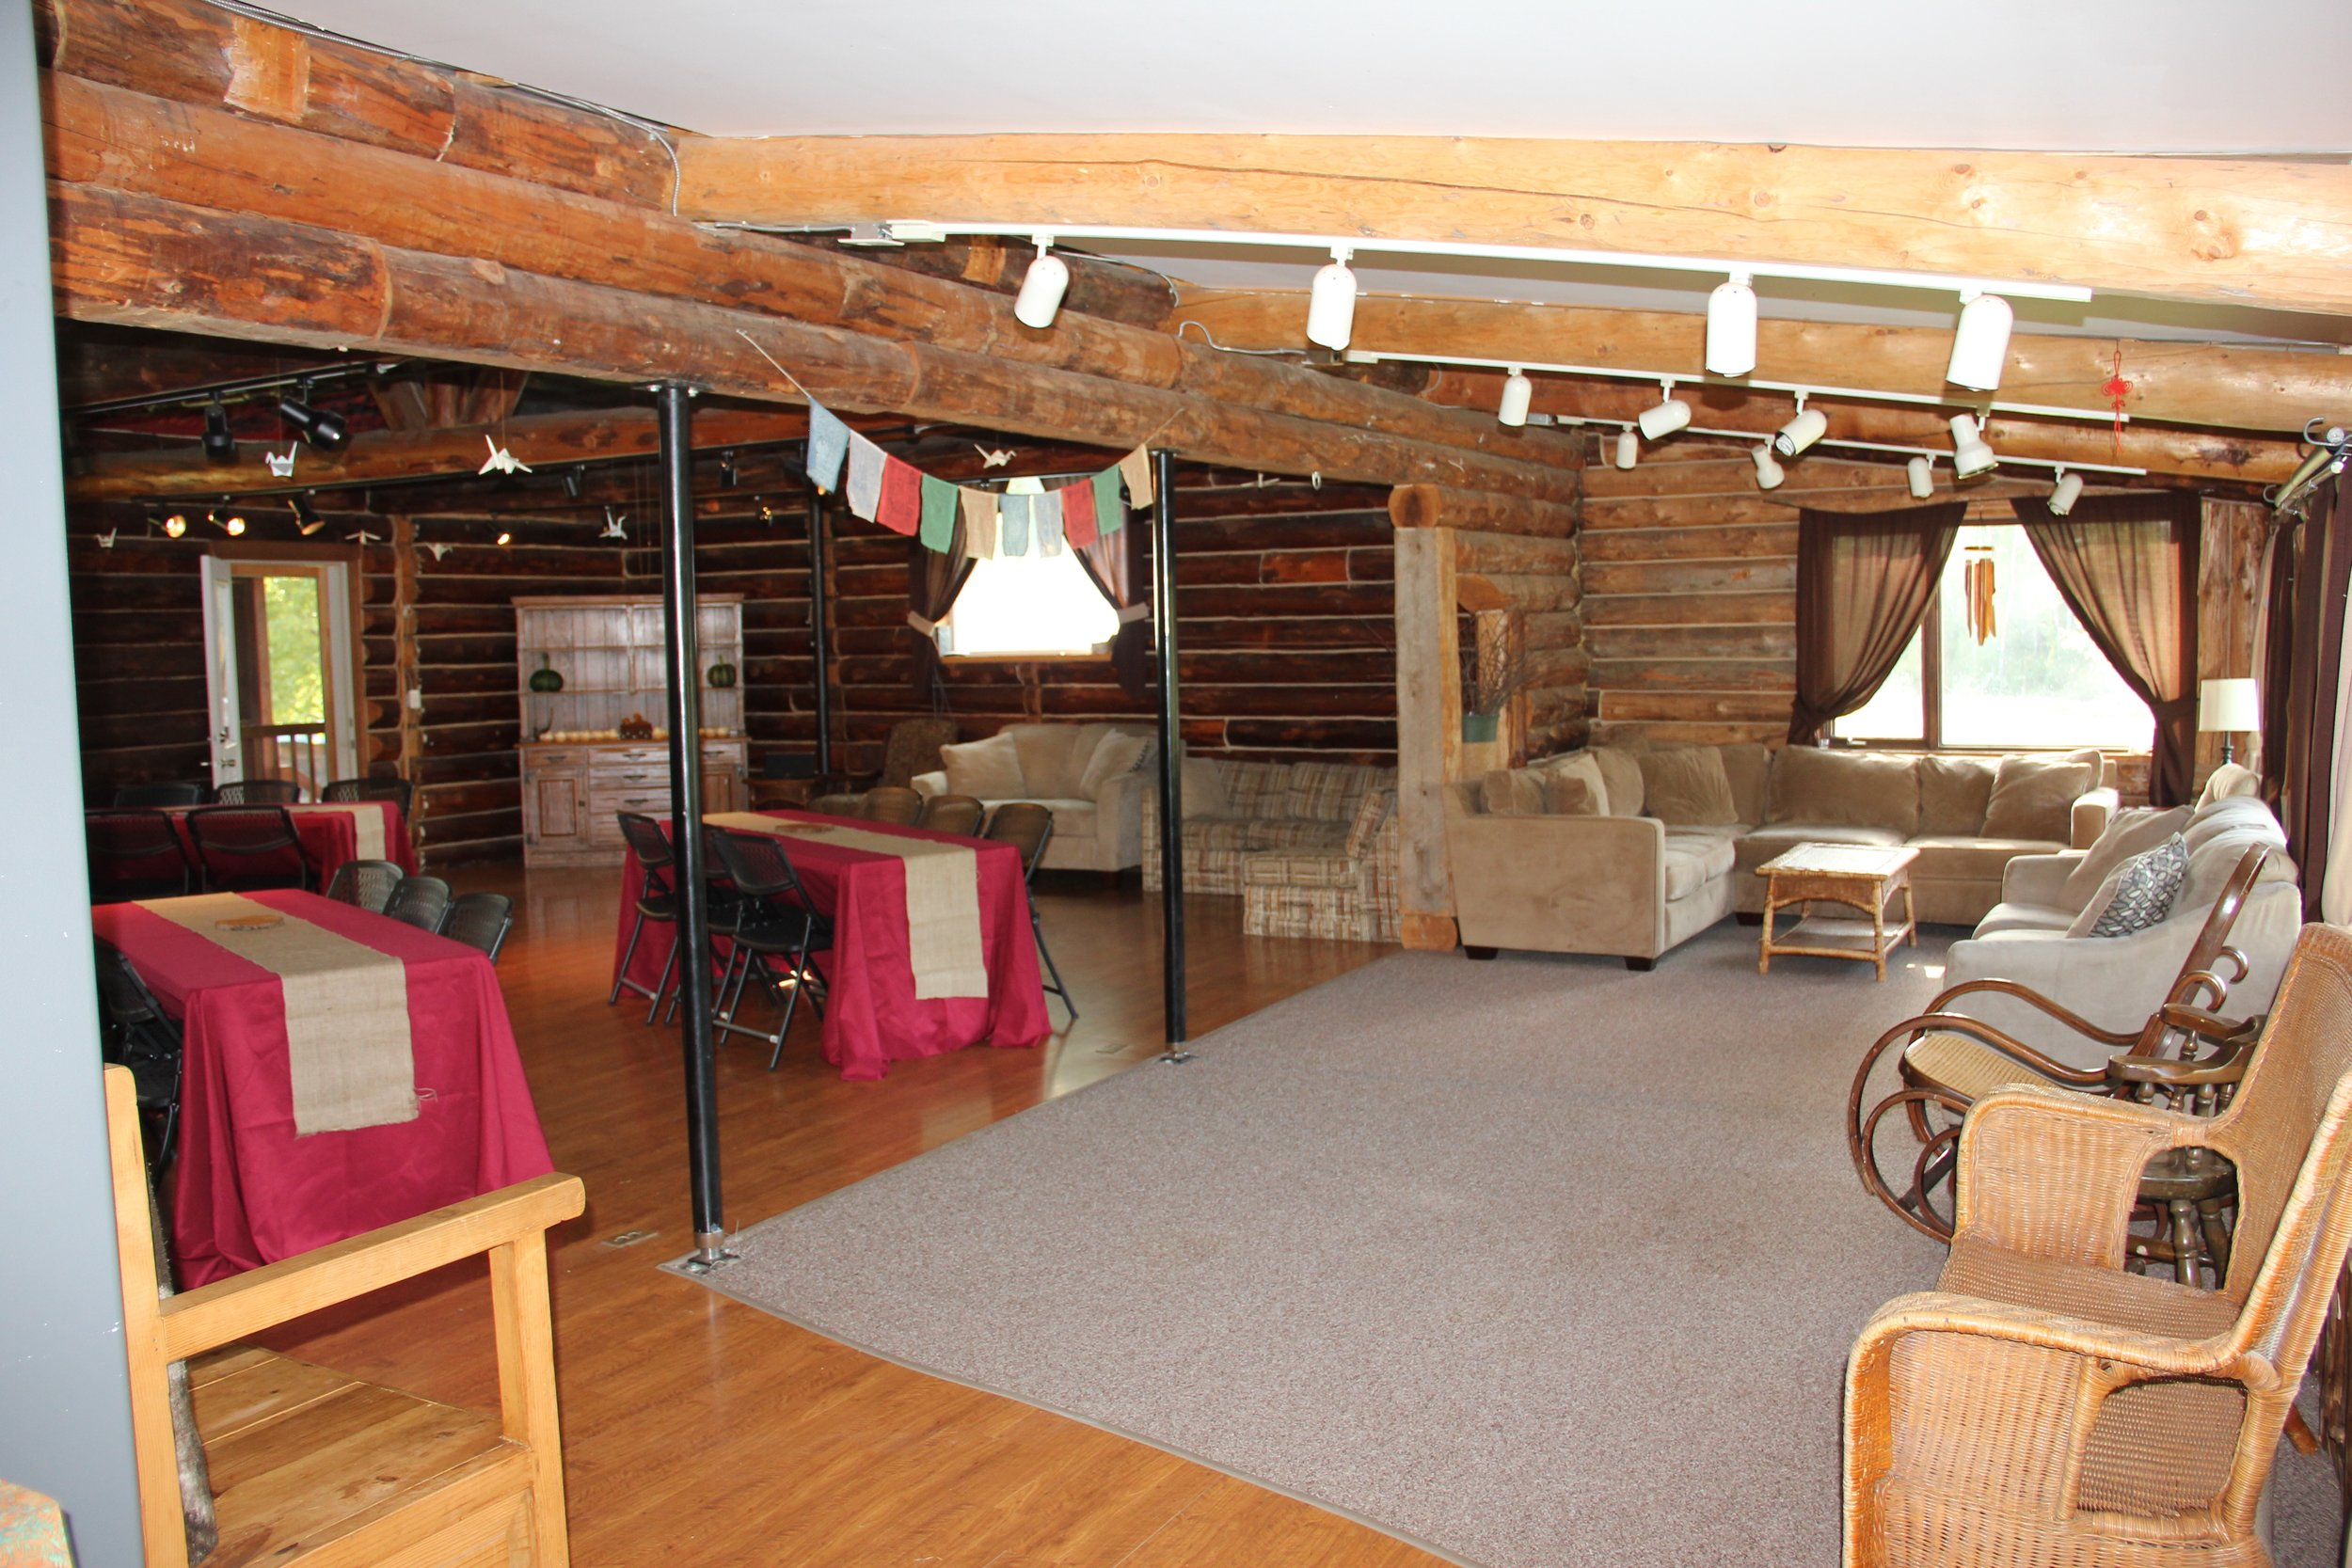 Those enjoying our Talkeetna lodging have access to the Grand Hall - a beautiful space occasionally used as a Talkeetna wedding venue, retreat center, meeting space, workshop venue talkeetna, and reception hall